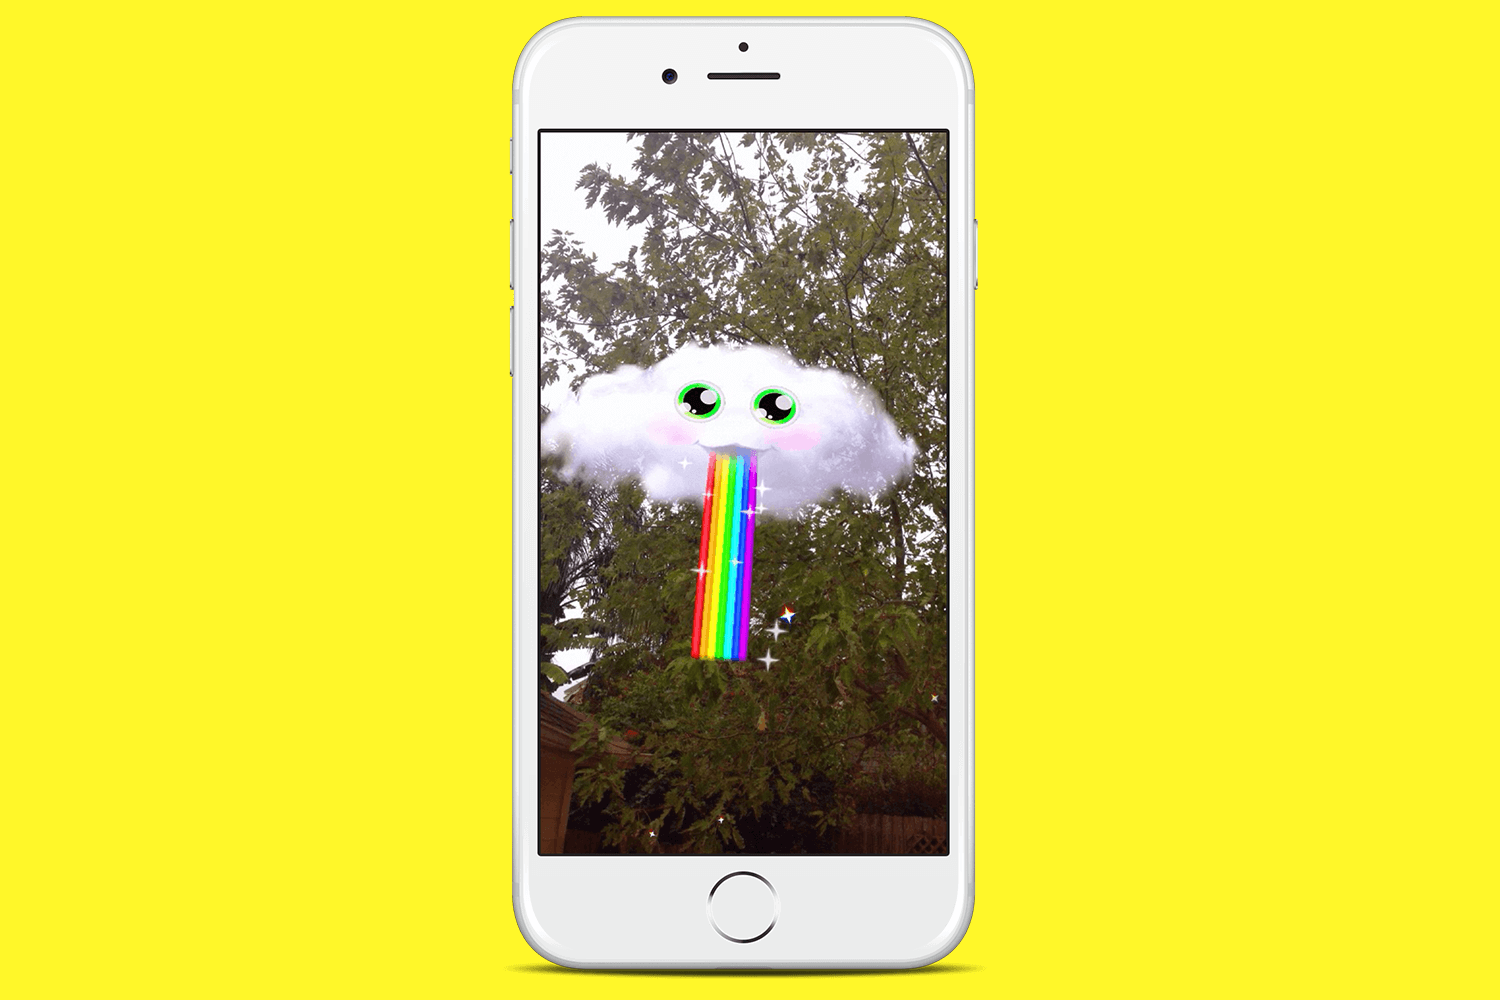 snapchat-world-lenses-rewind-and-share-snap-stories.png